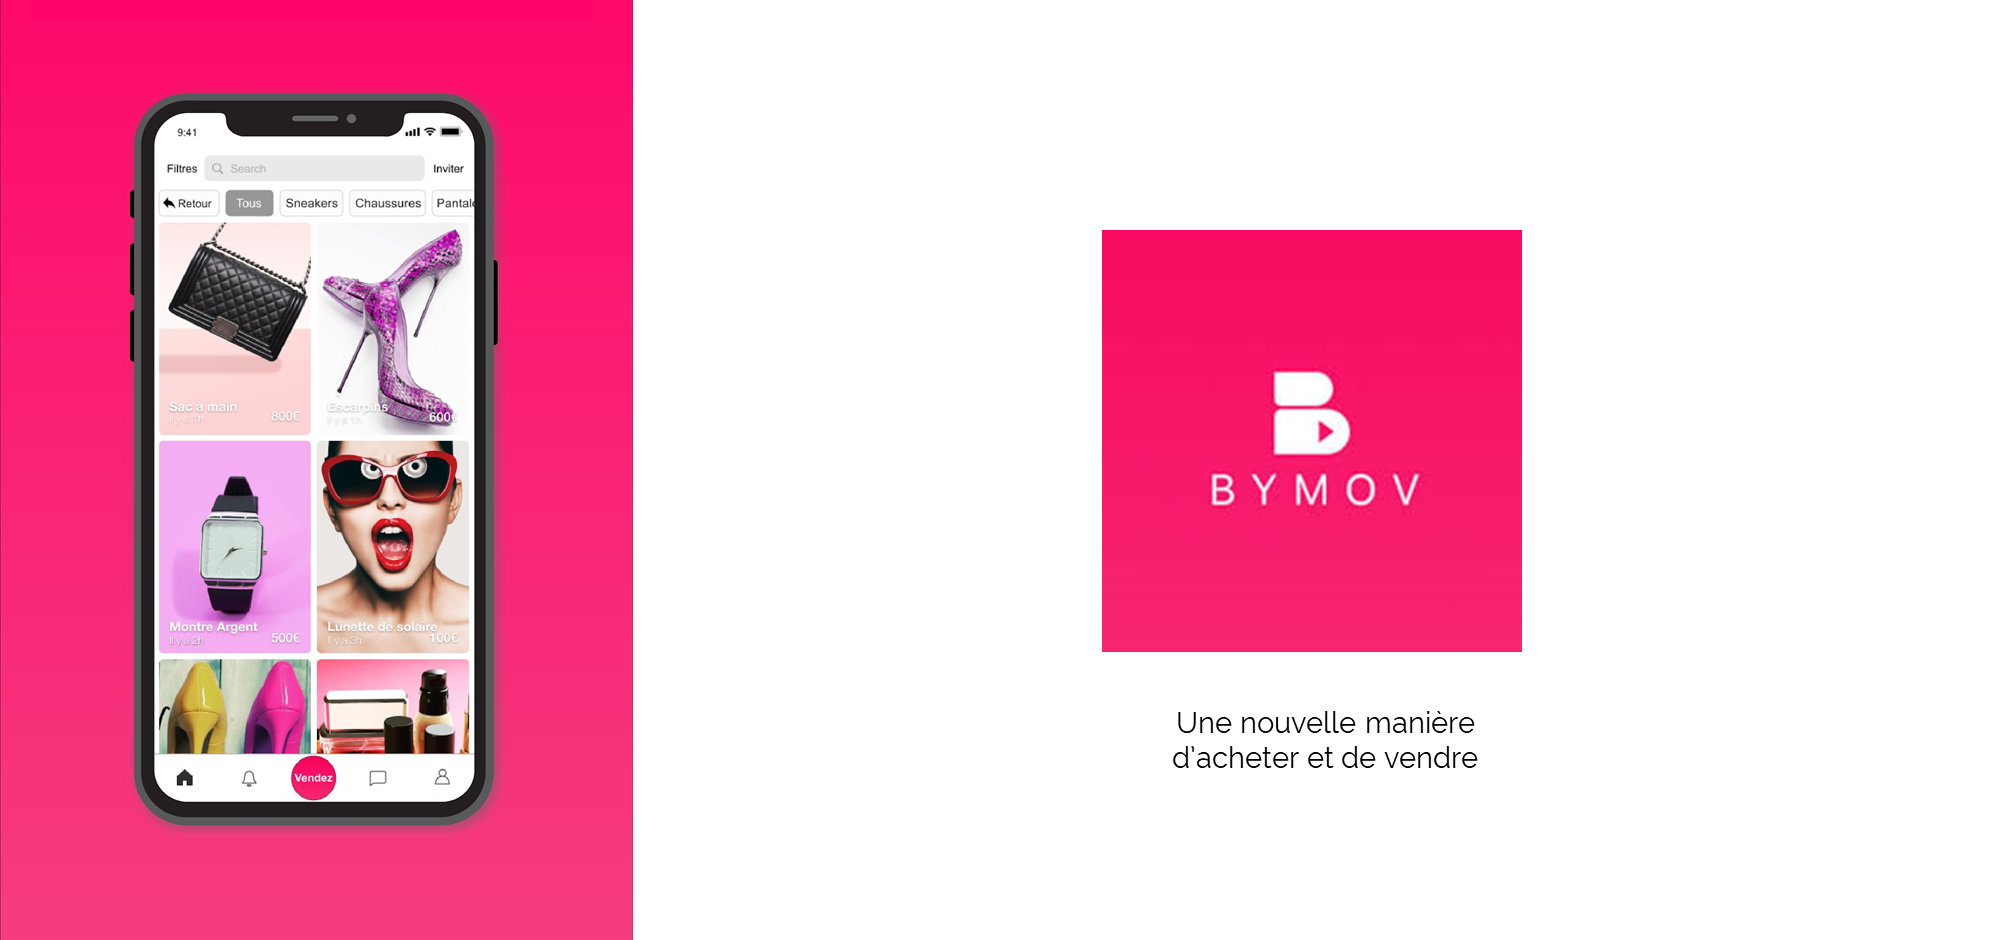 BYMOV - Marketplace 100% video de l'économie circulaire - Le YouTube de la 2nd main !